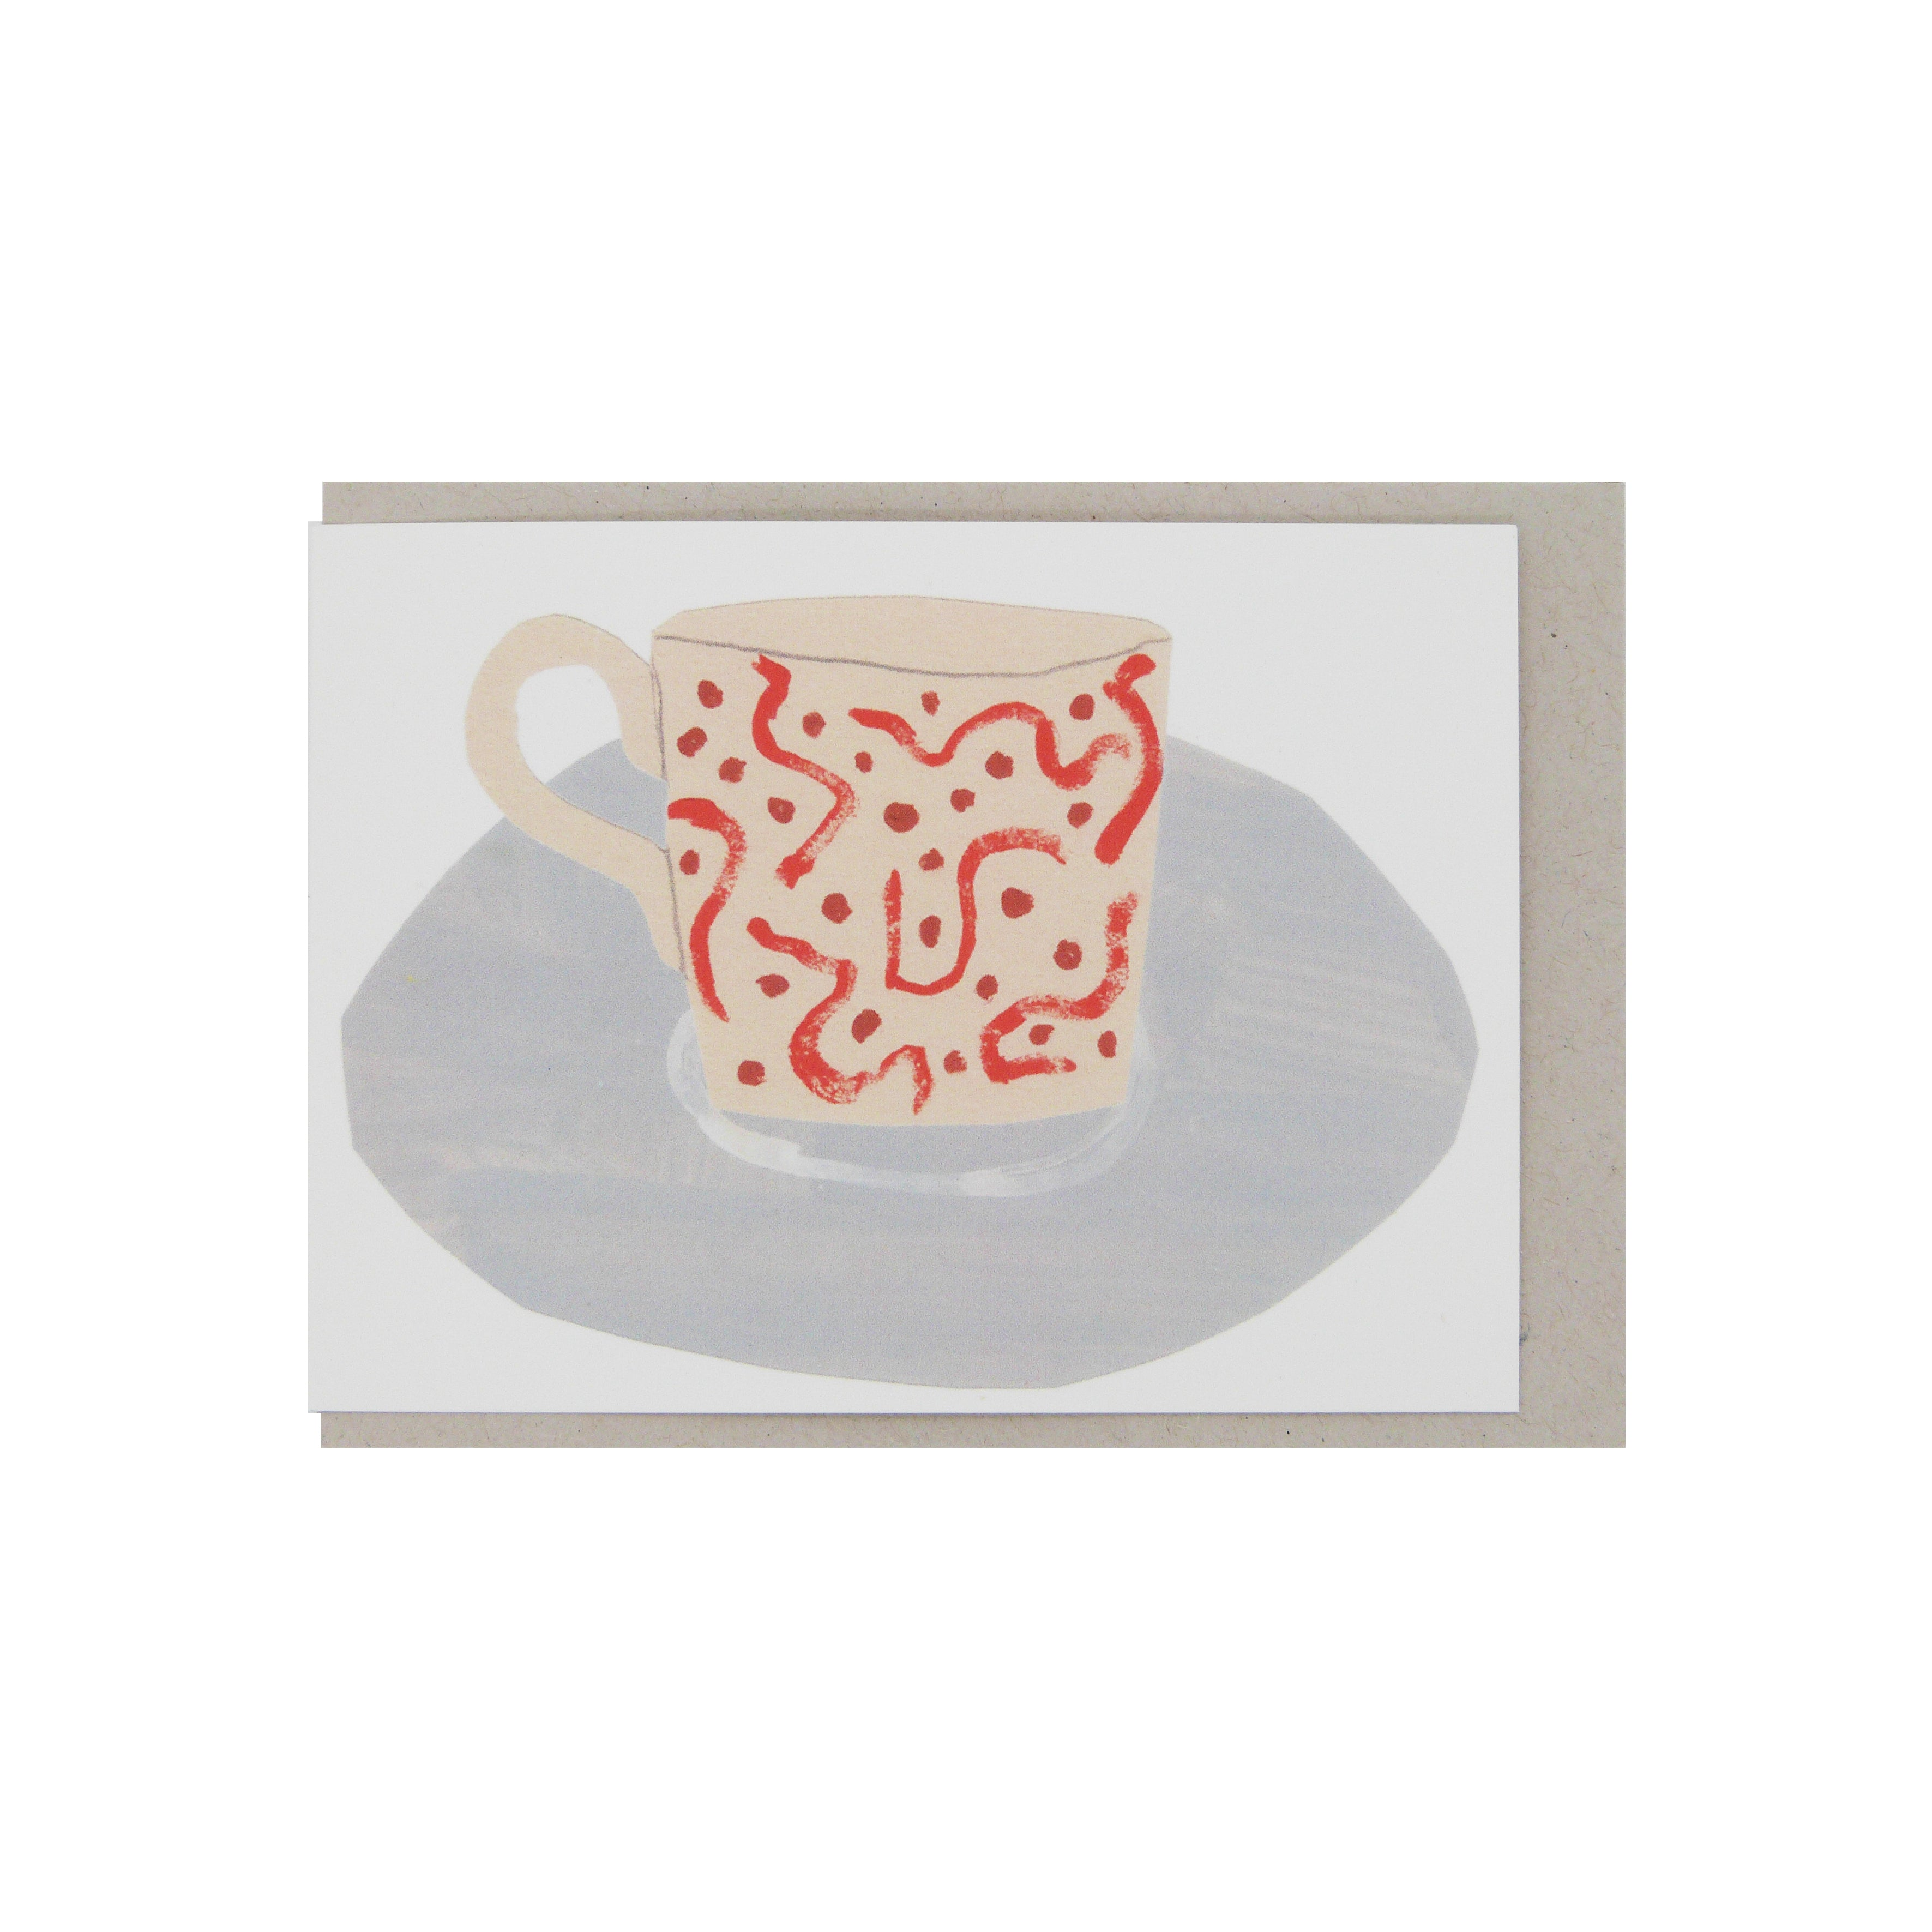 Hadley Paper Goods Hadley x Kettle's Yard Teacups Folding Greetings Card 2